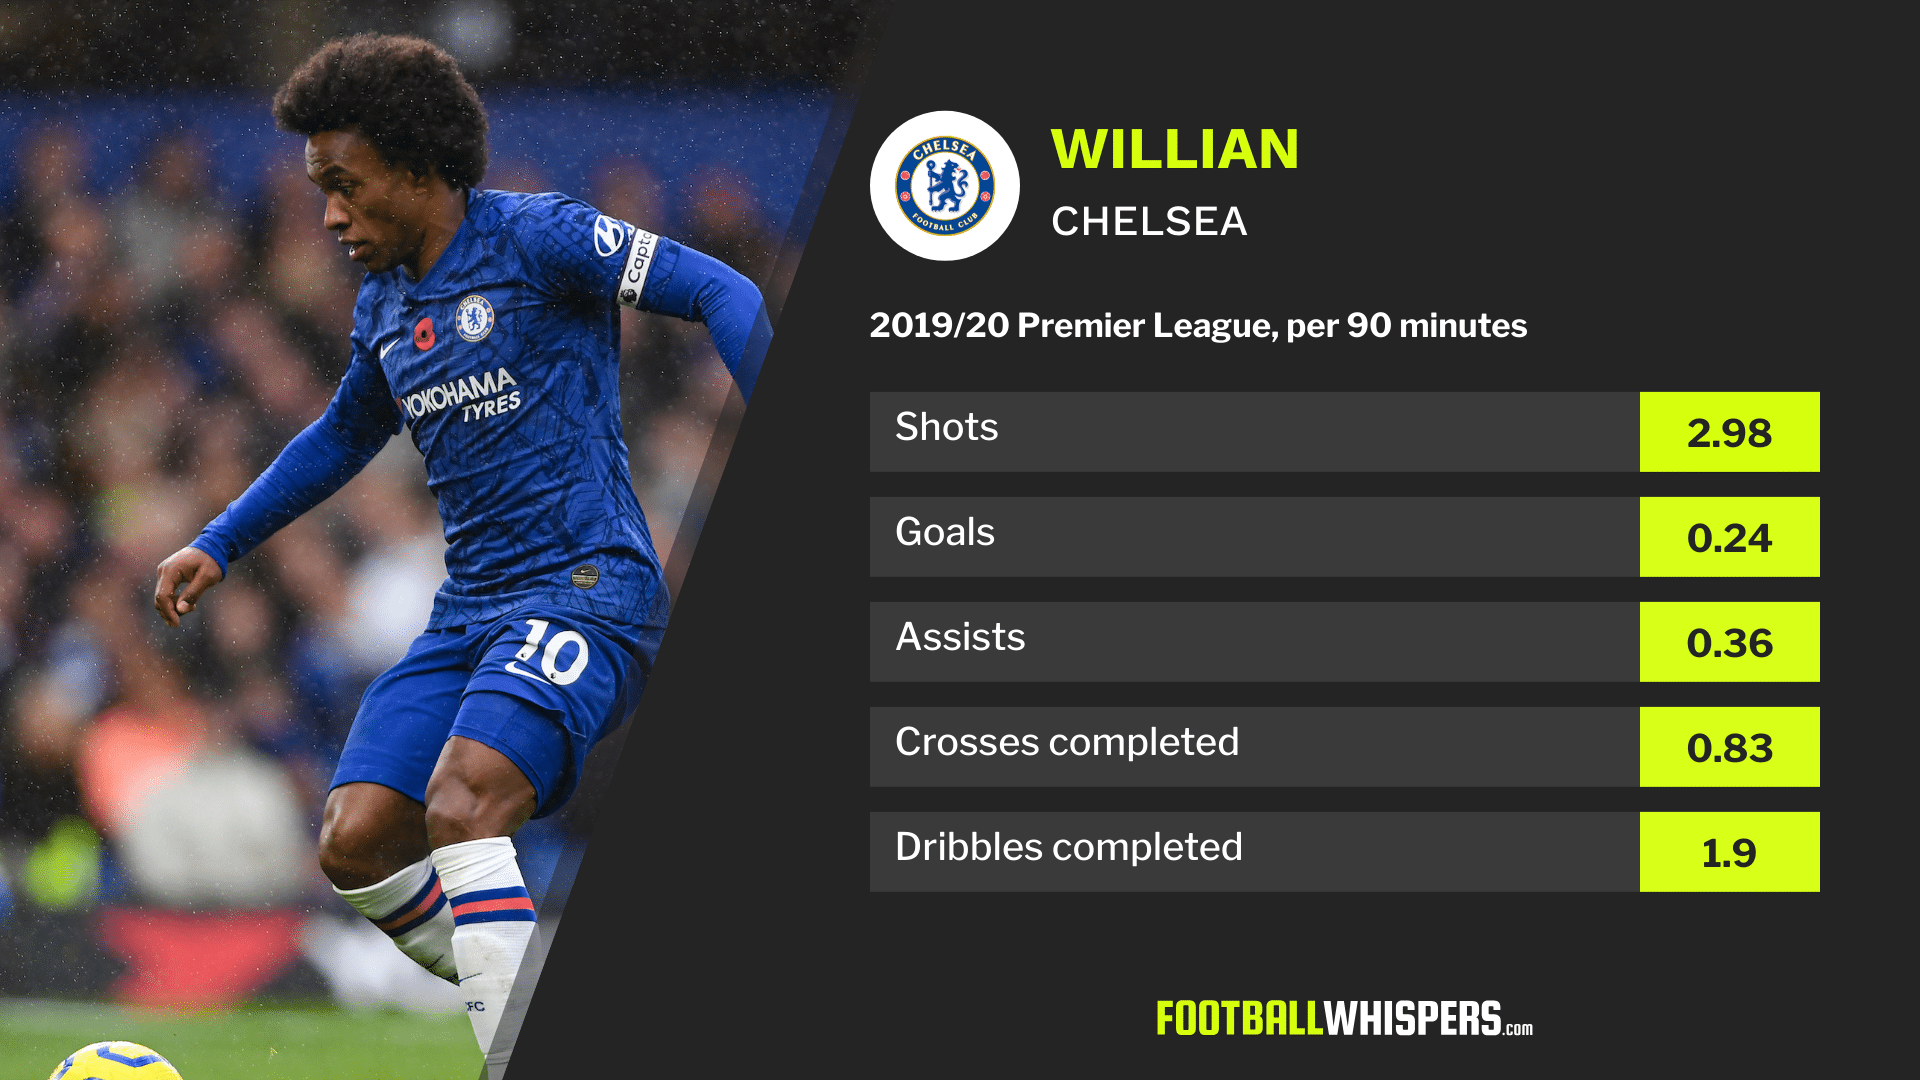 Premier League stats for Chelsea forward Willian